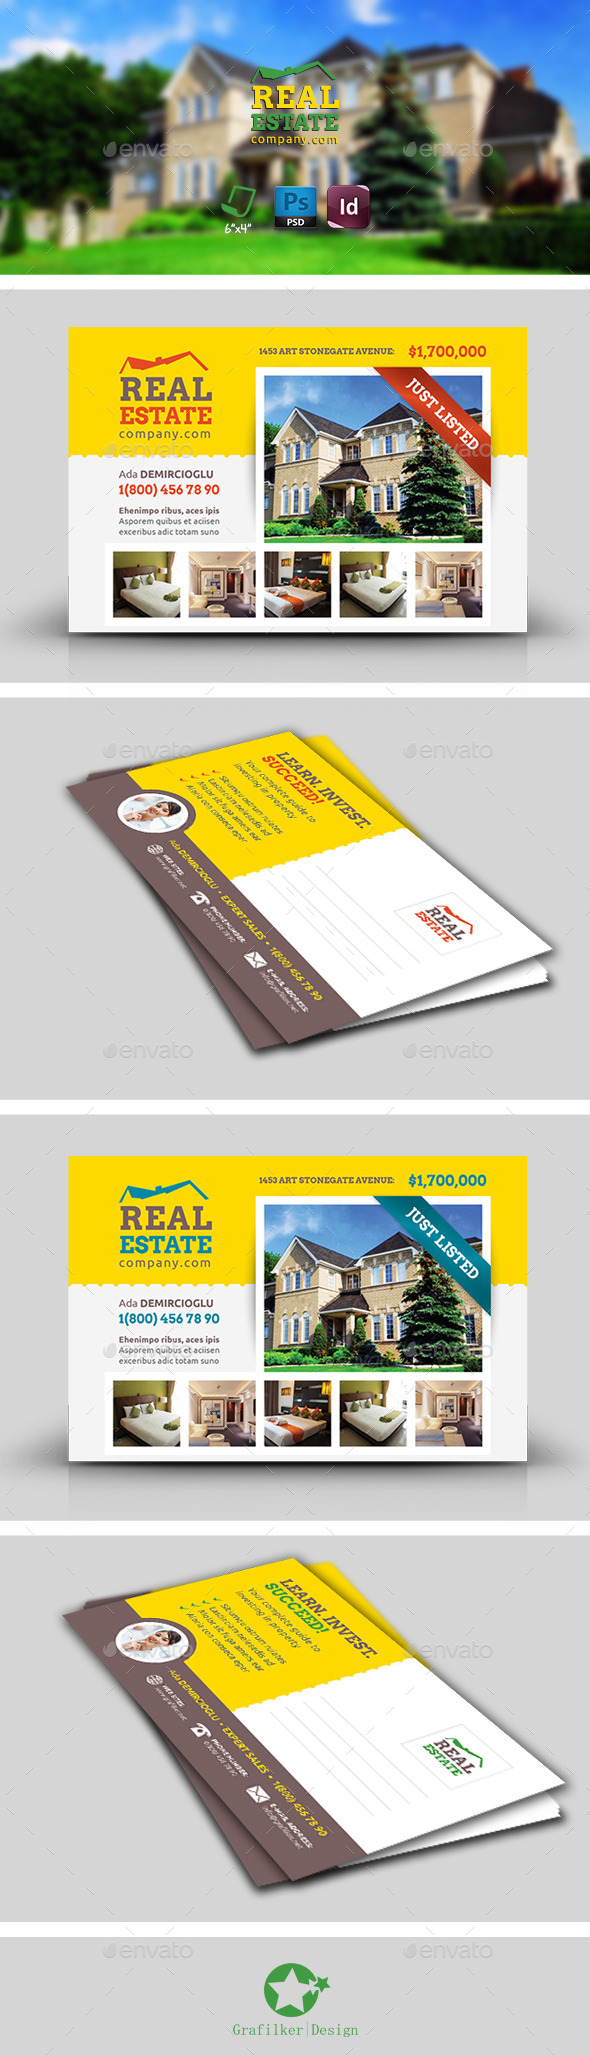 GraphicRiver Real Estate Postcard Templates 8921066